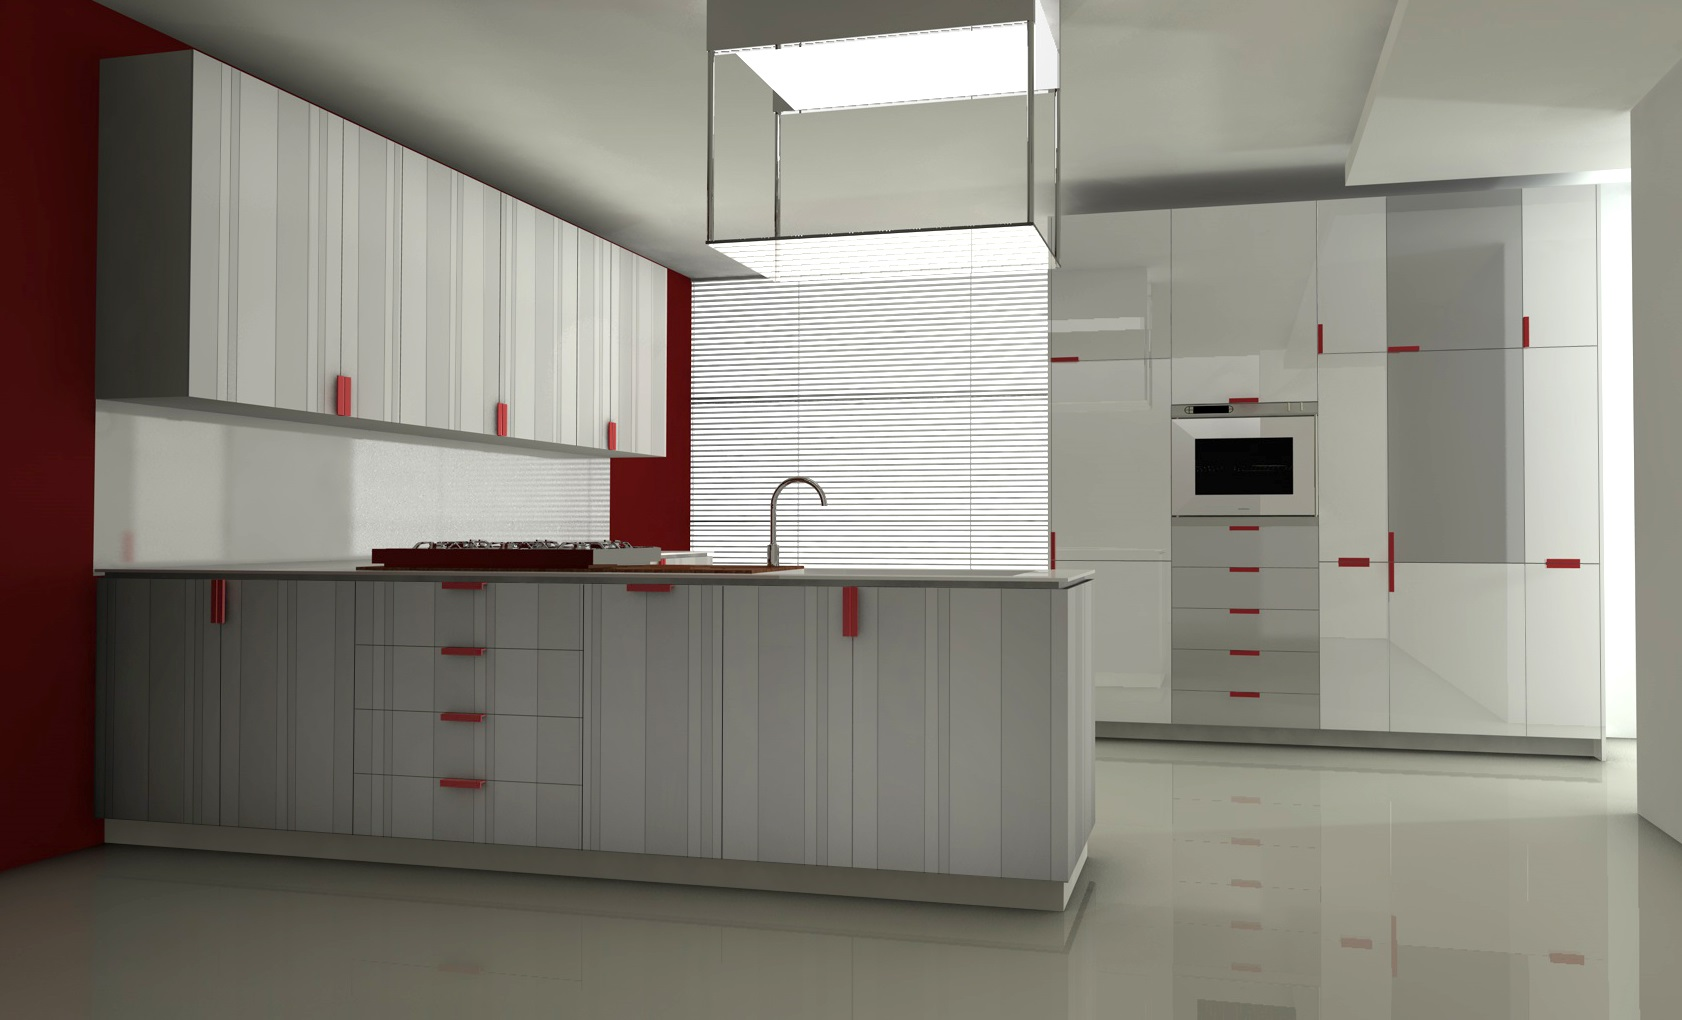 Digital print laminates, kitchen system - Alessandro Villa architect